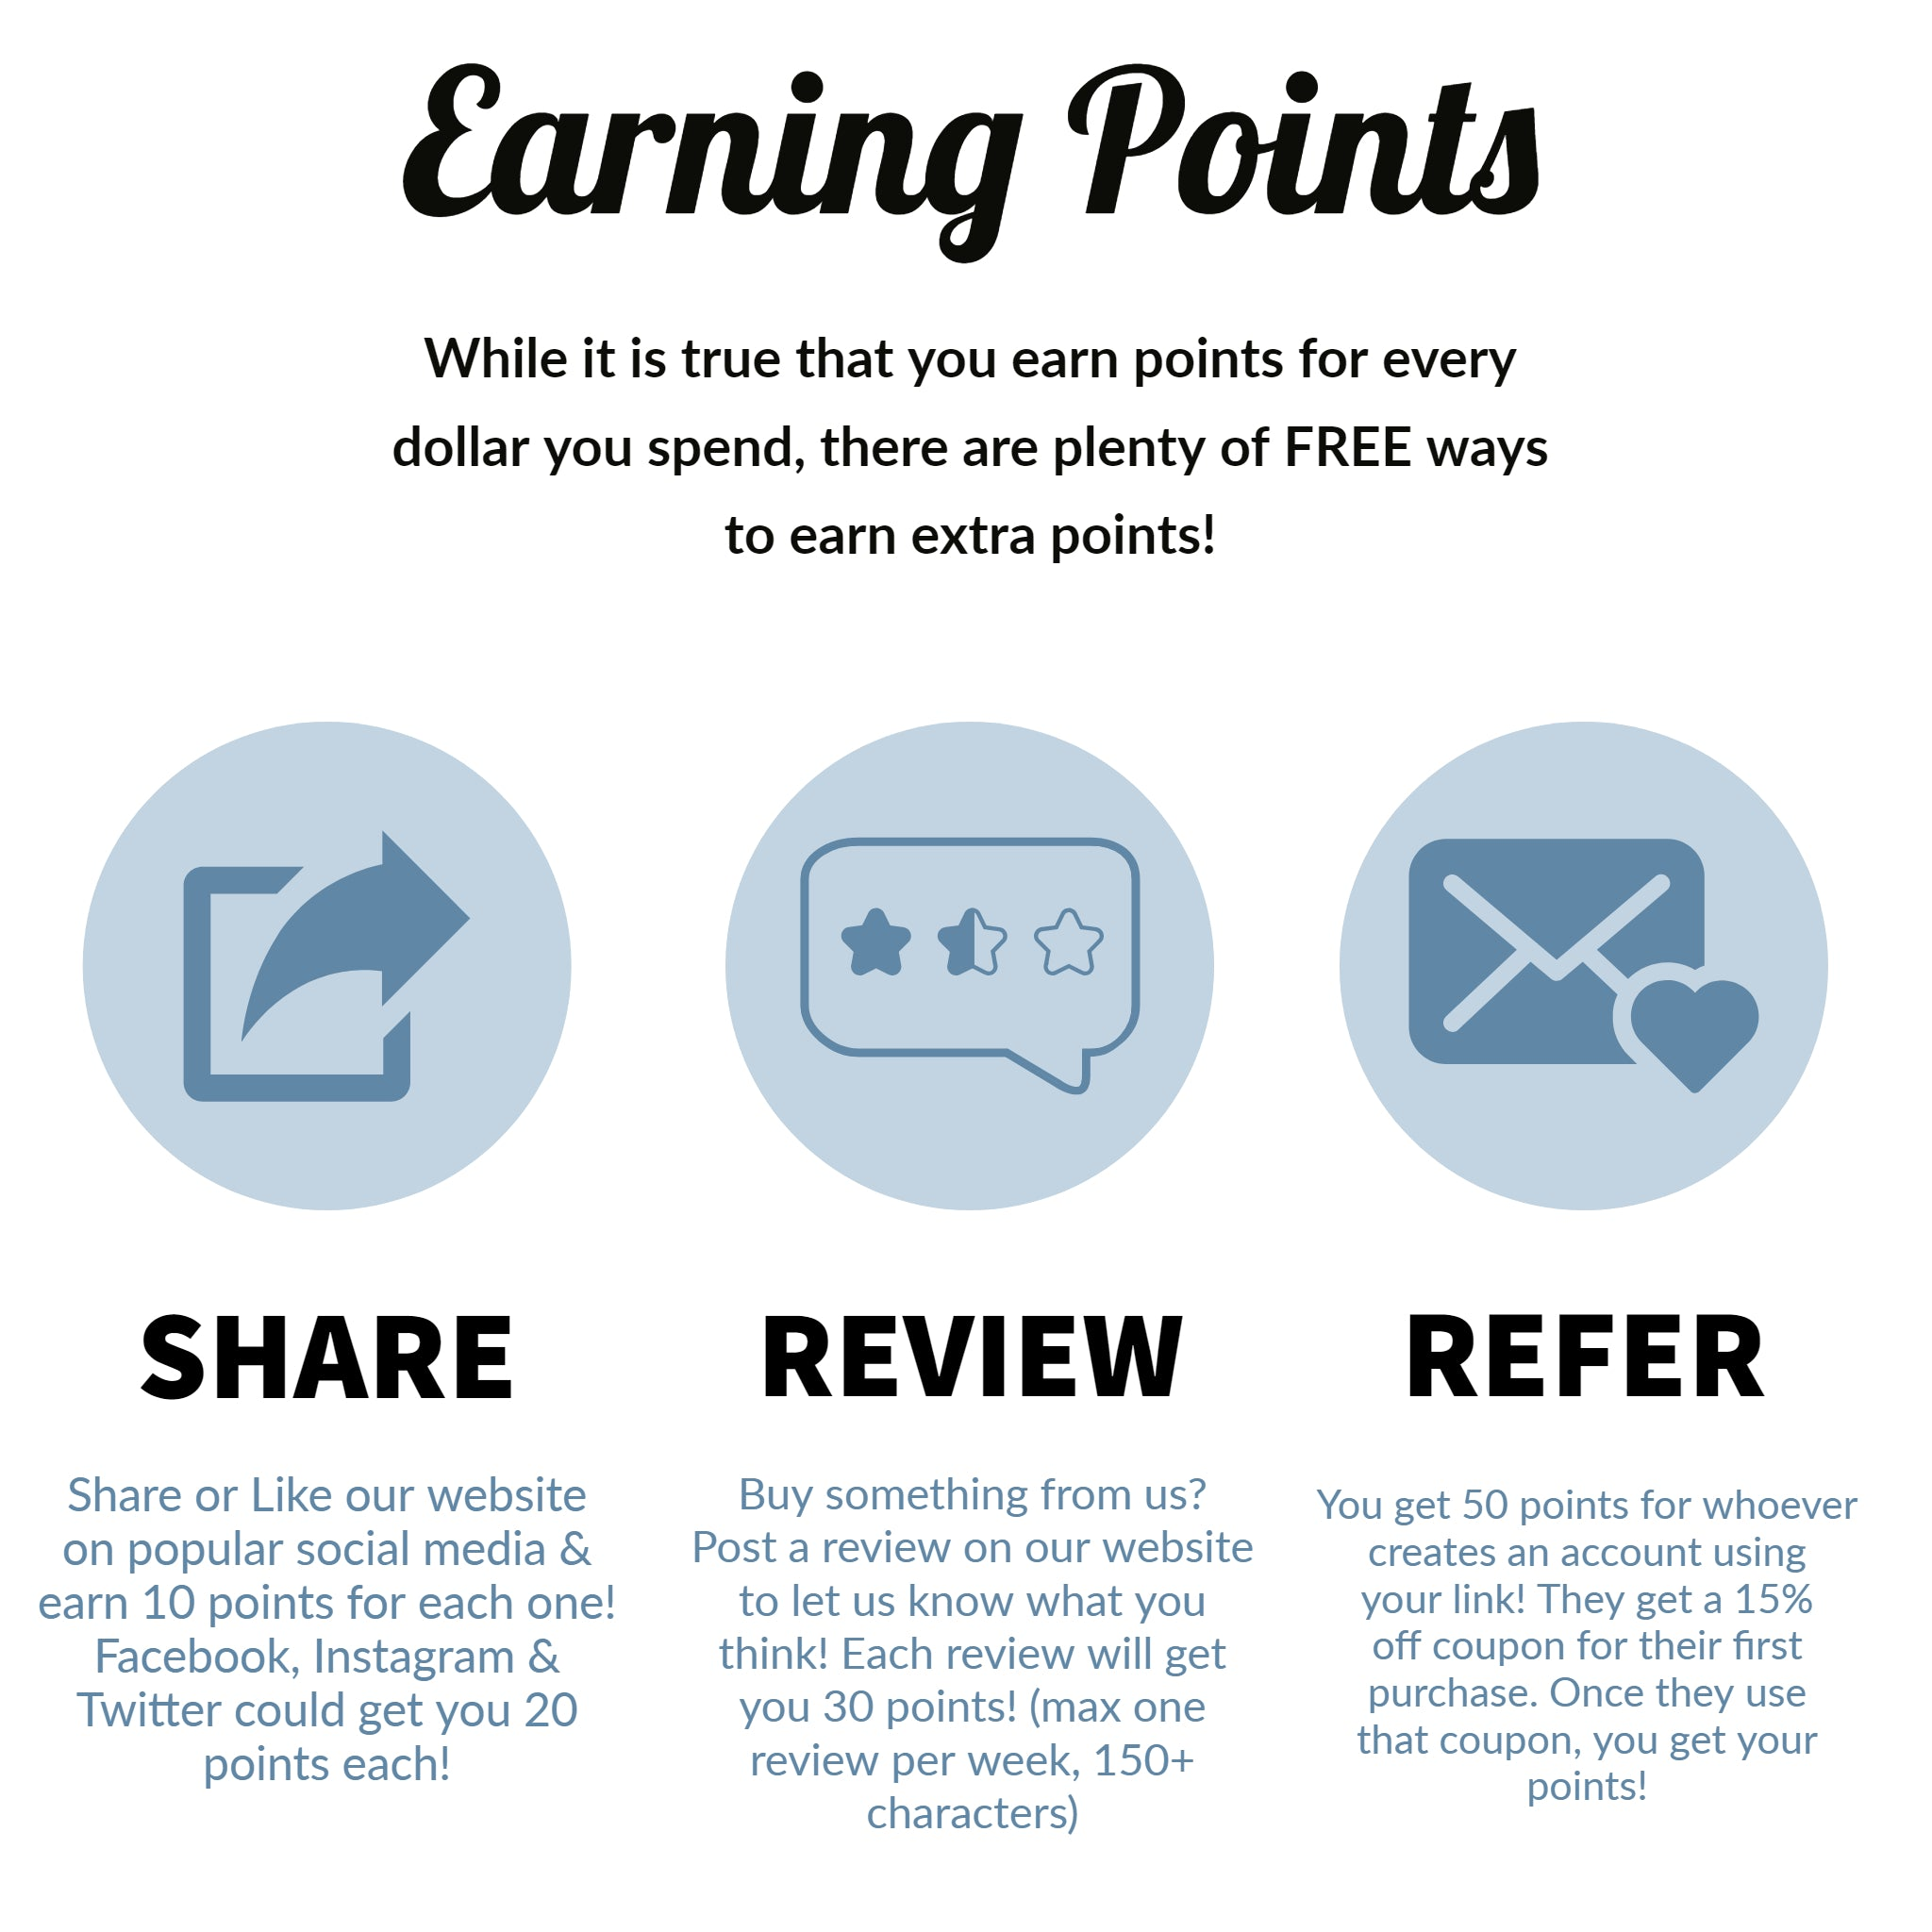 Earning Points